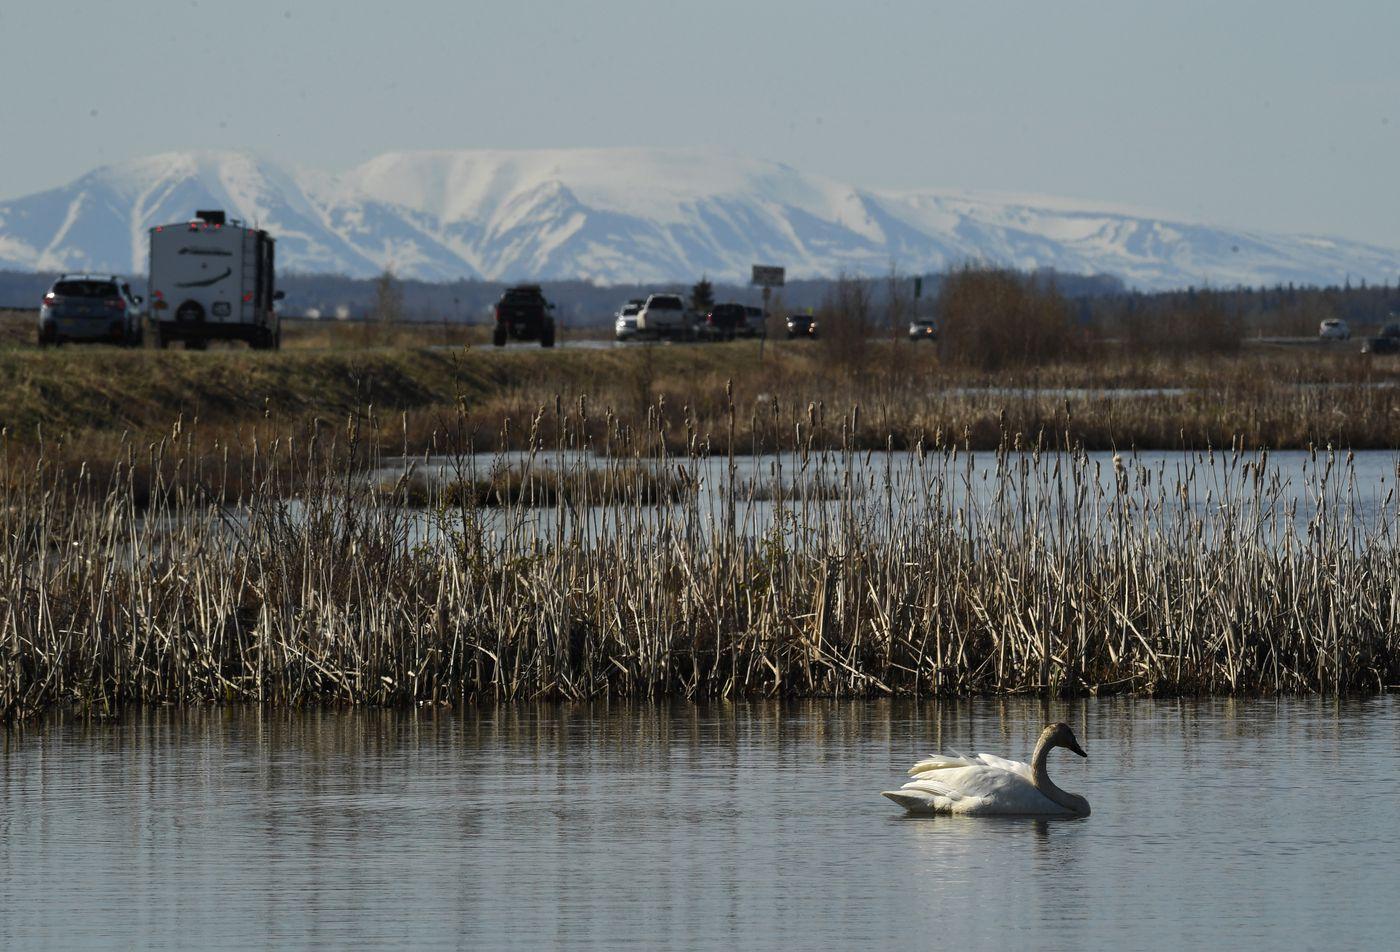 One of a pair of nesting trumpeter swans feeds in Potter Marsh as traffic moves along the Seward Highway May 9, 2020. Mount Susitna rises in the background. (Photo by Bob Hallinen)